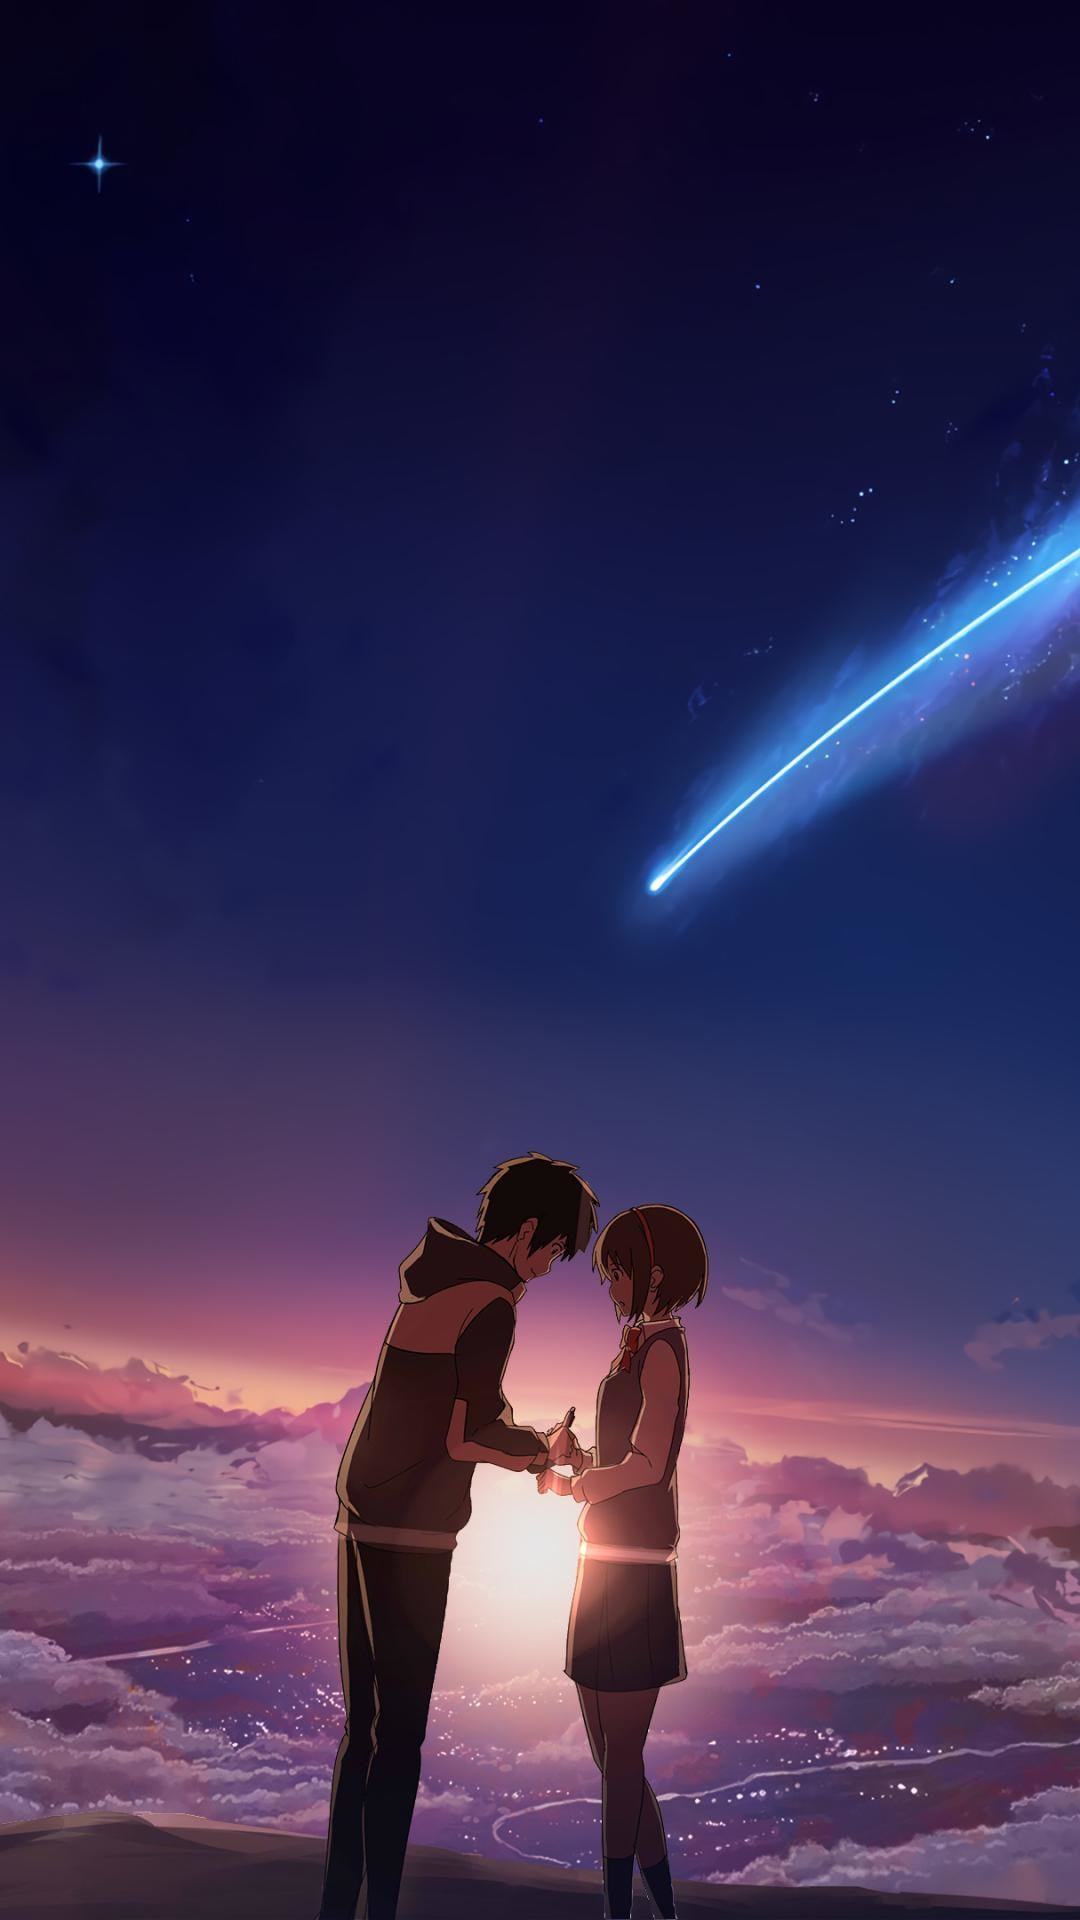 Love Anime Wallpaper (74+ pictures)